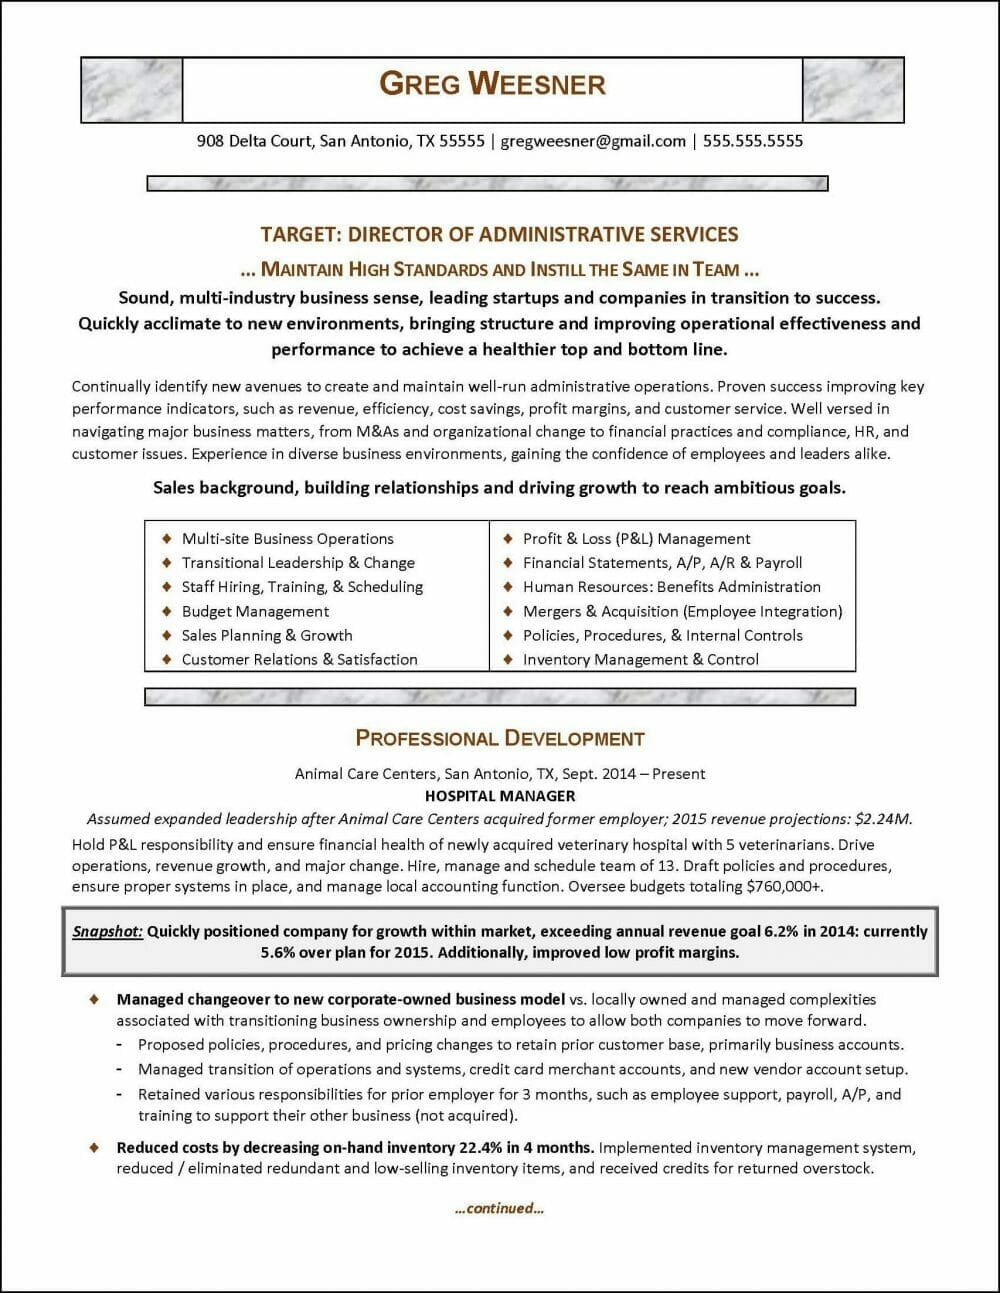 career change resume for new industry distinctive services transition honors college Resume Career Transition Resume